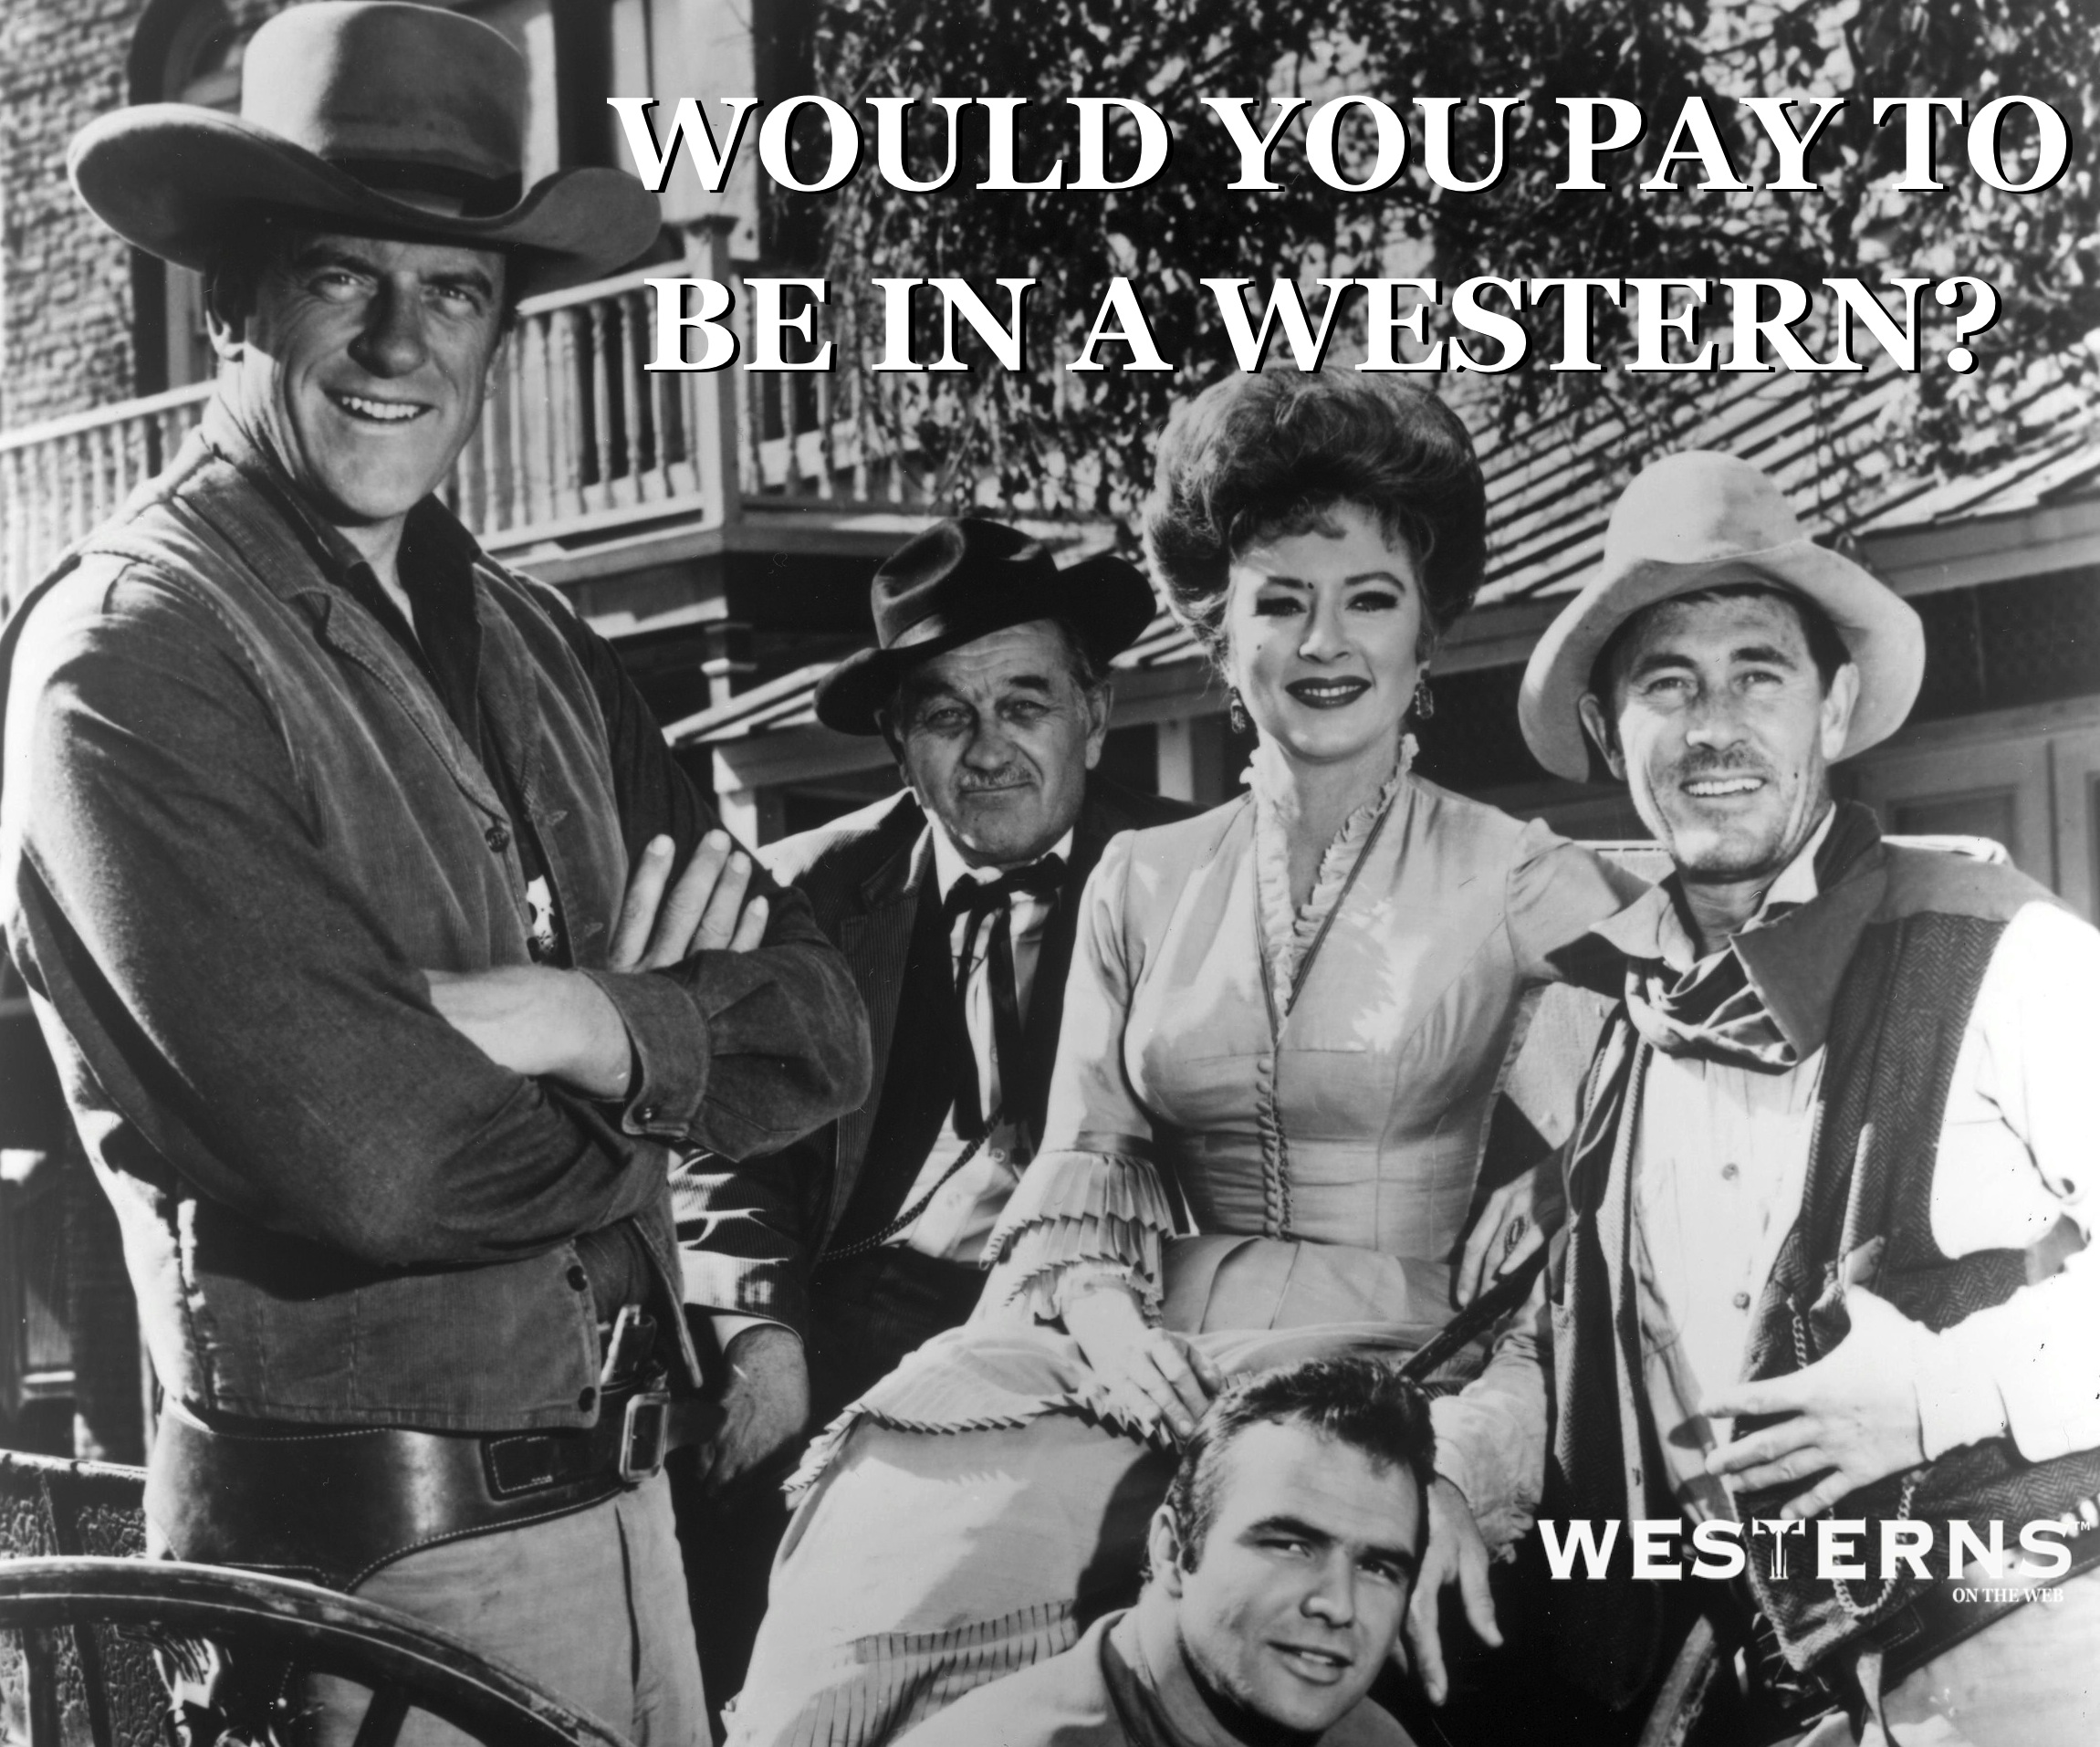 would-you-pay-to-be-in-a-western-movie